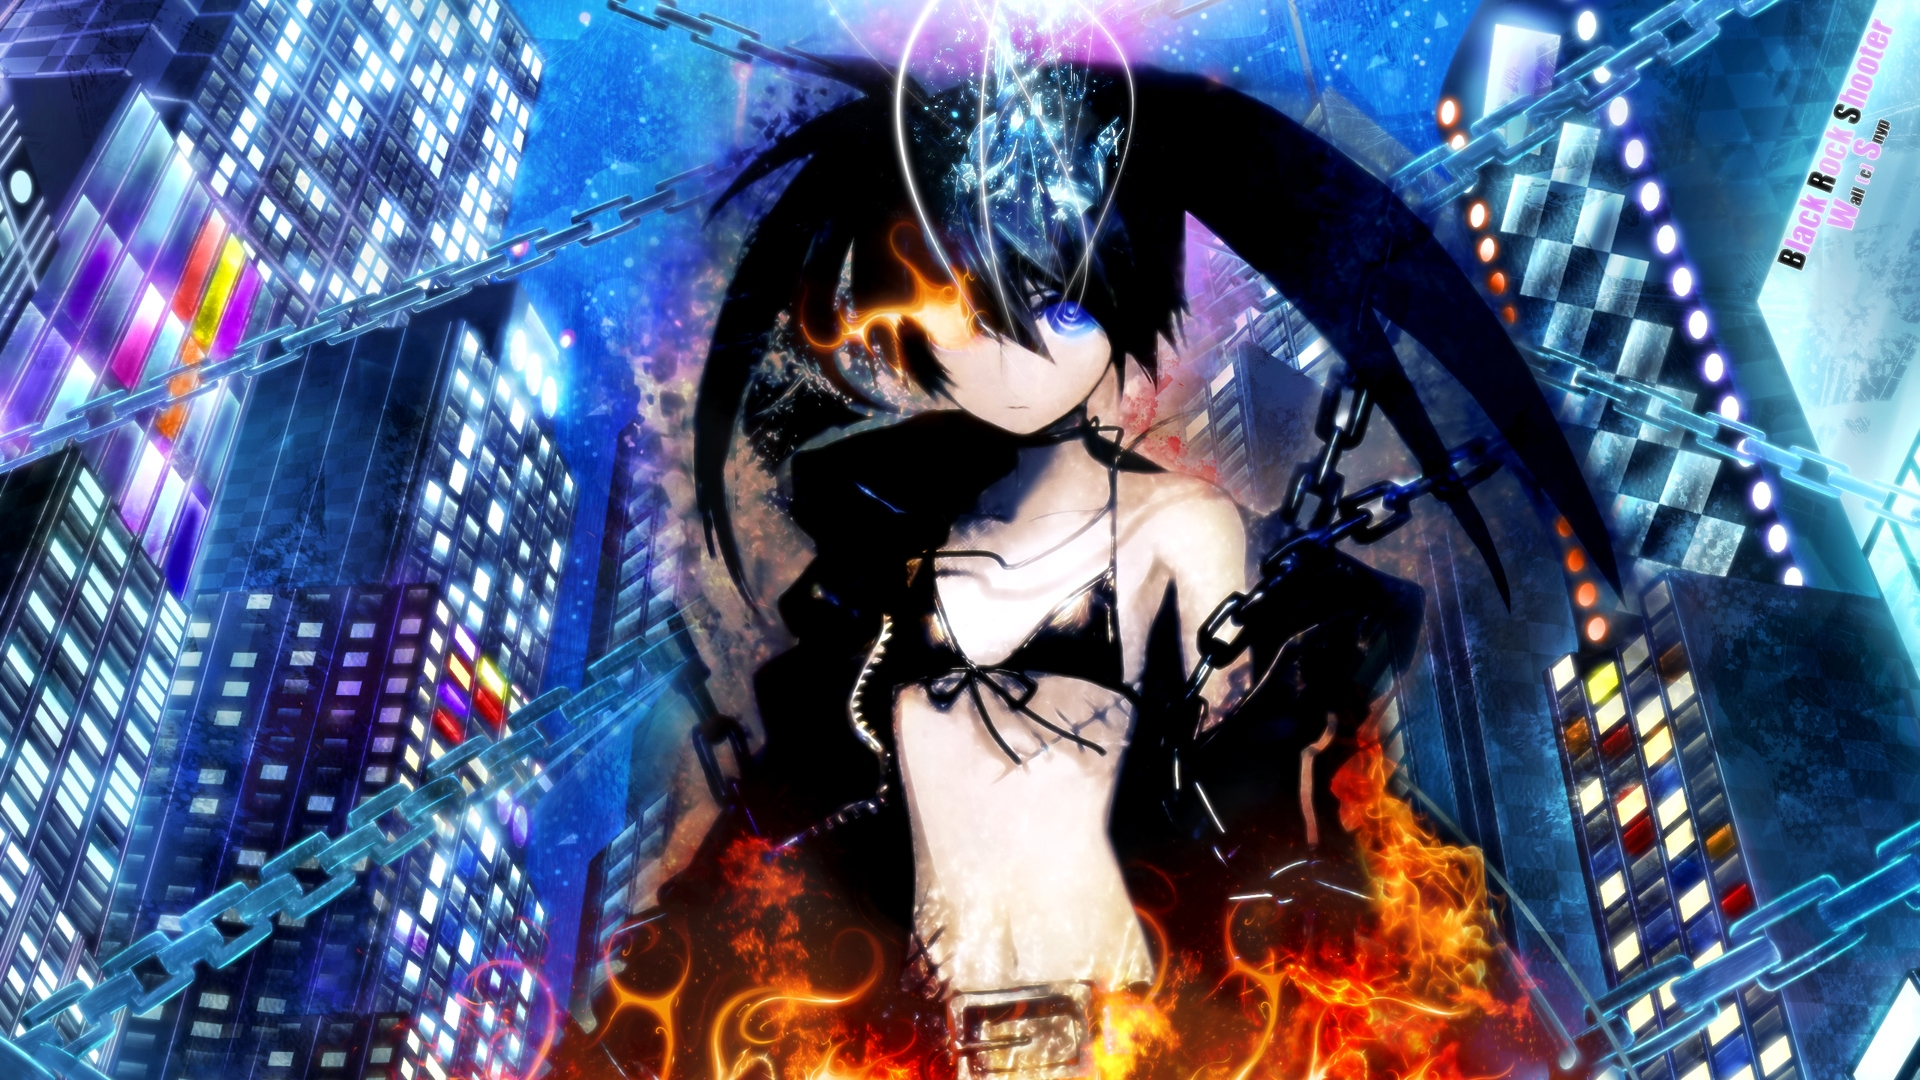 black rock shooter hd background